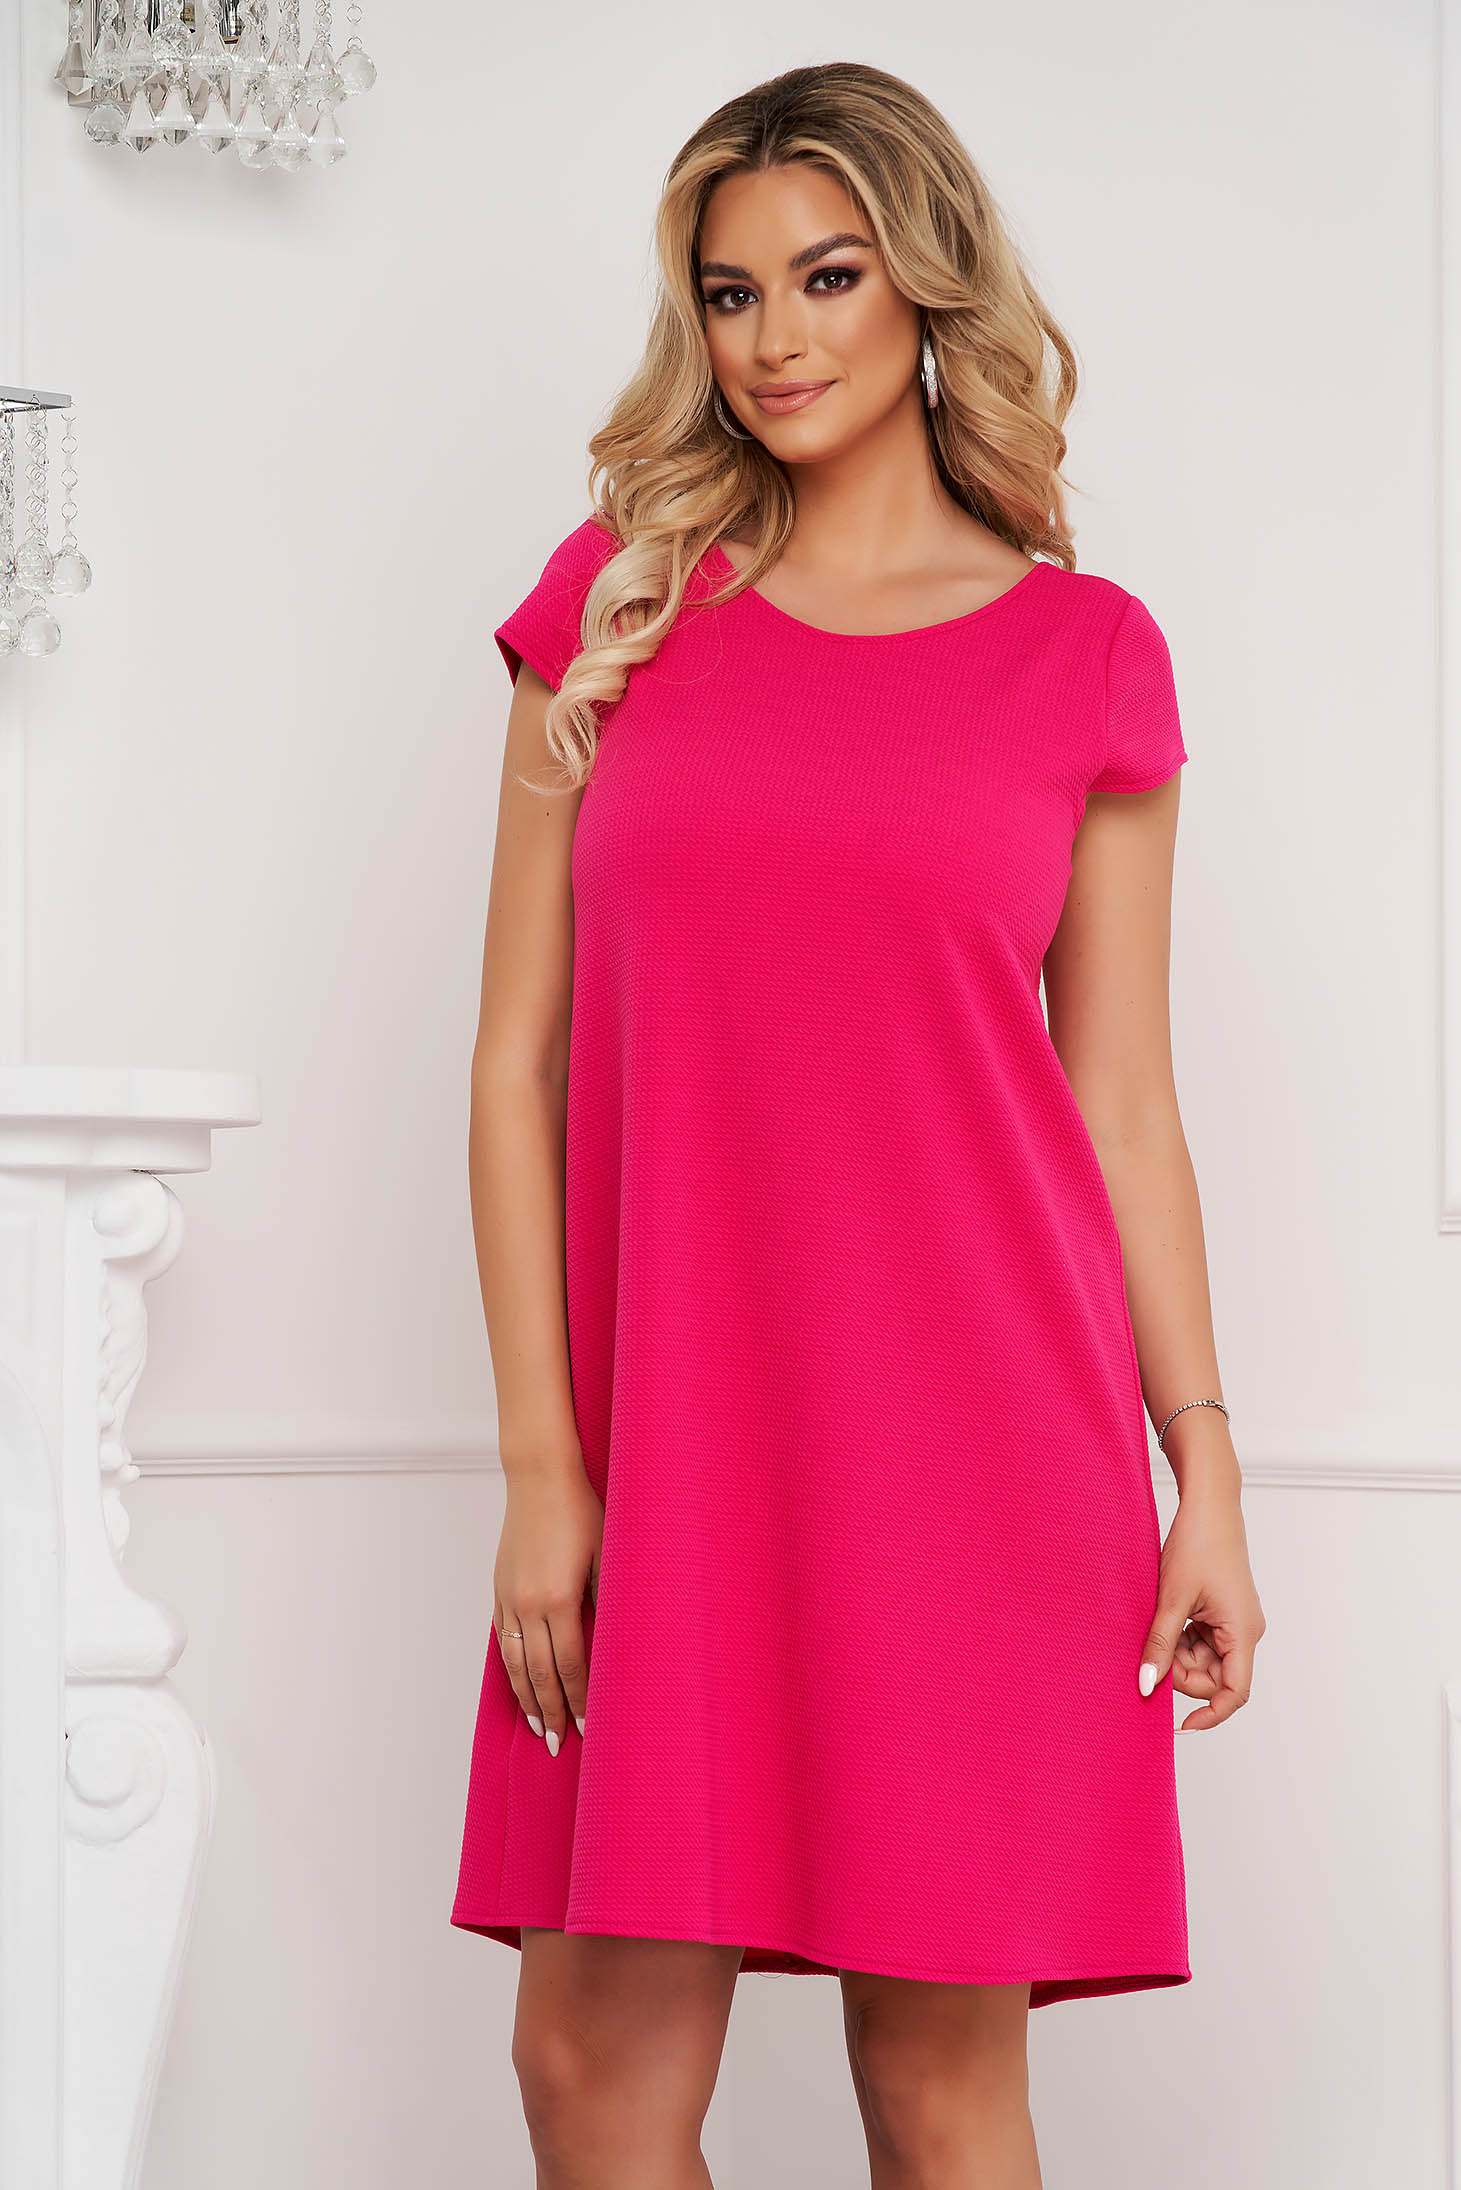 StarShinerS fuchsia dress short cut loose fit wrinkled material with cut back